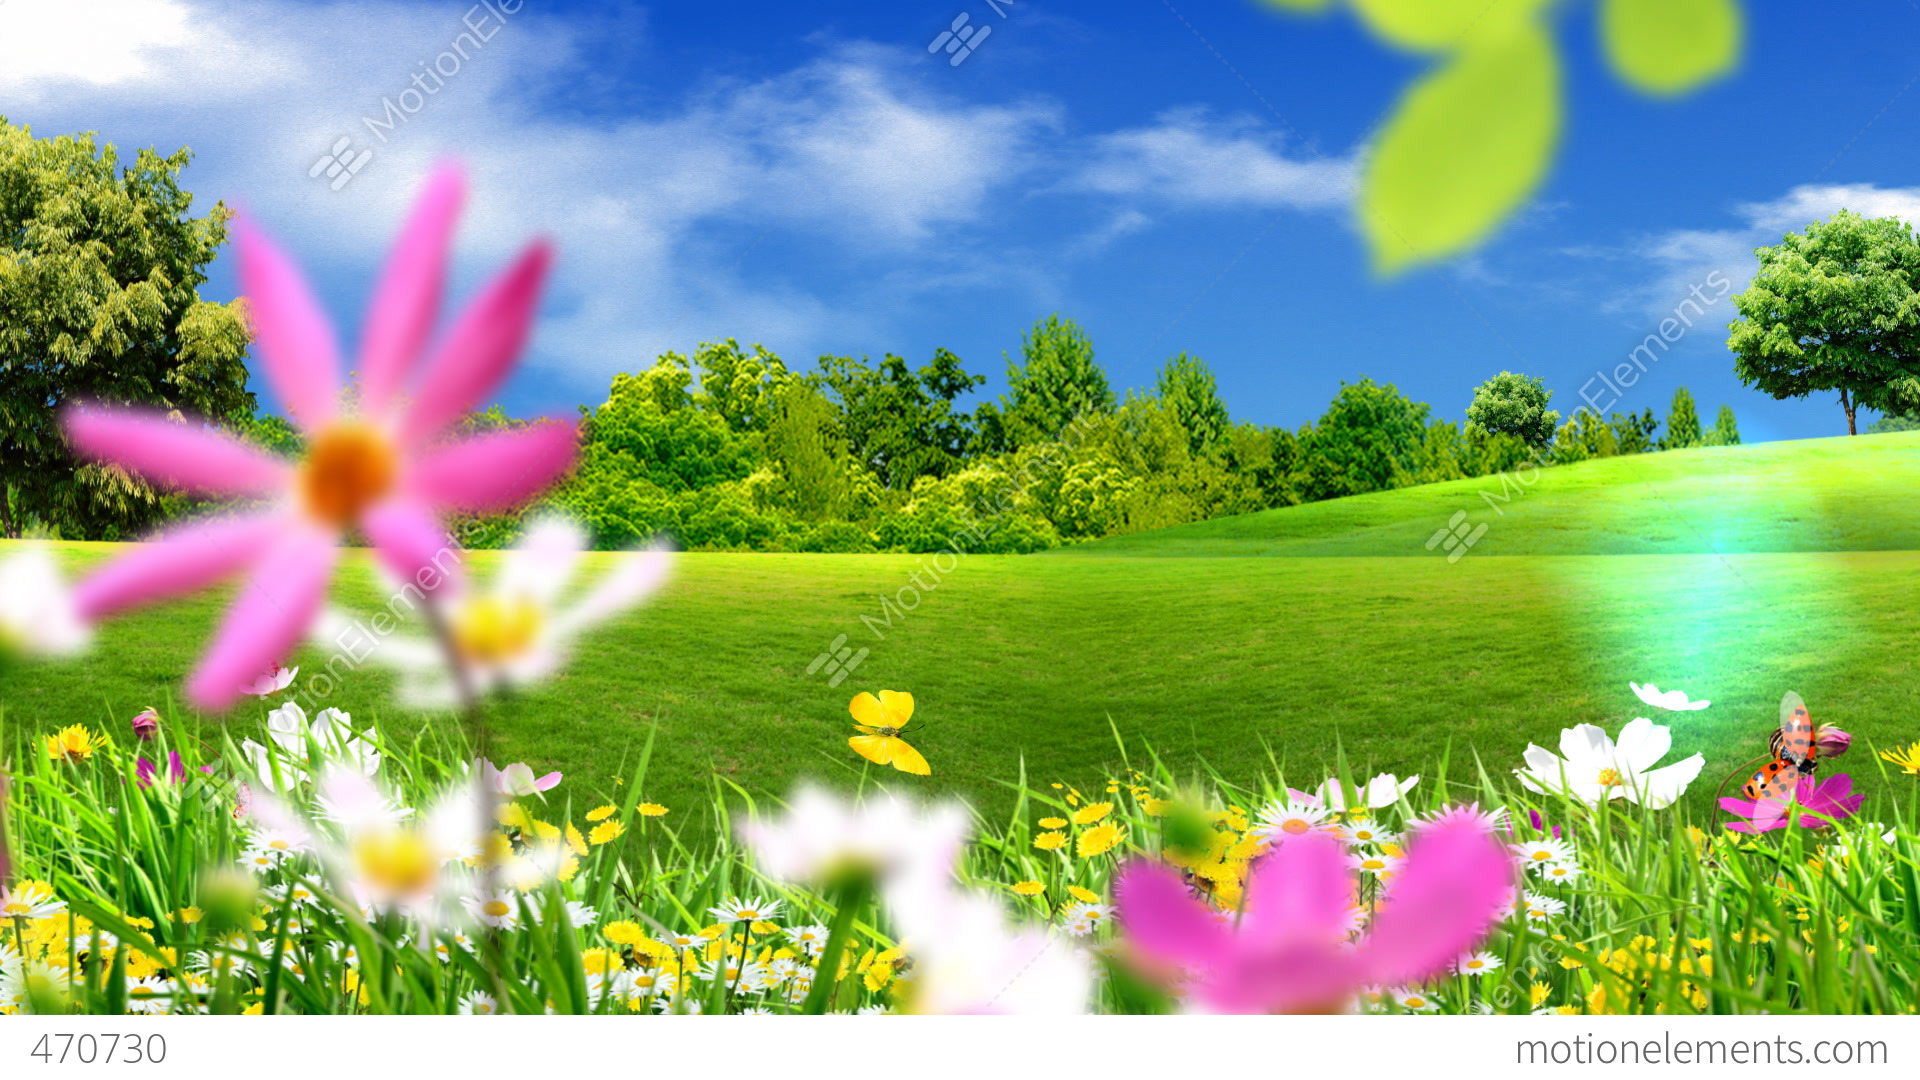 Green Meadows And Flowers Stock Animation   470730